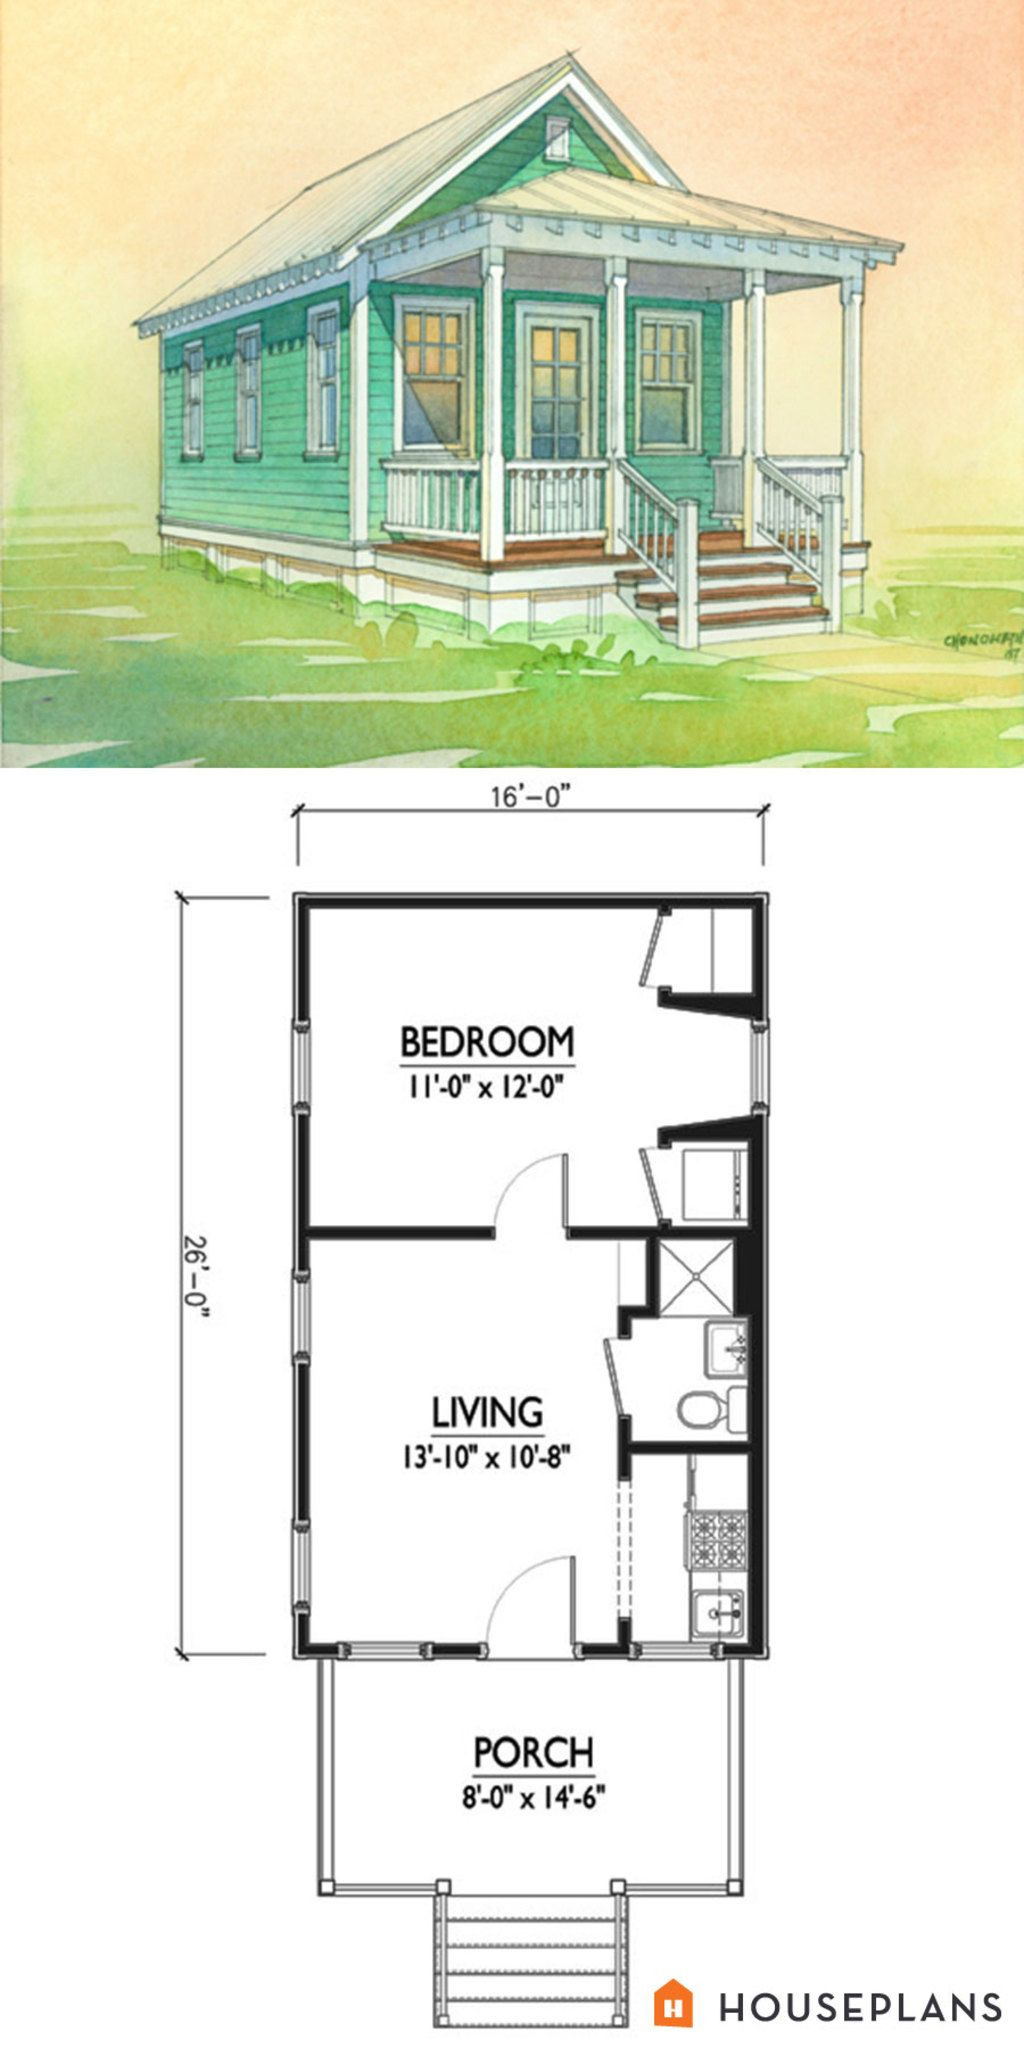 Plans for Cottages and Small Houses Best Of Cottage Style House Plan 1 Beds 1 Baths 416 Sq Ft Plan